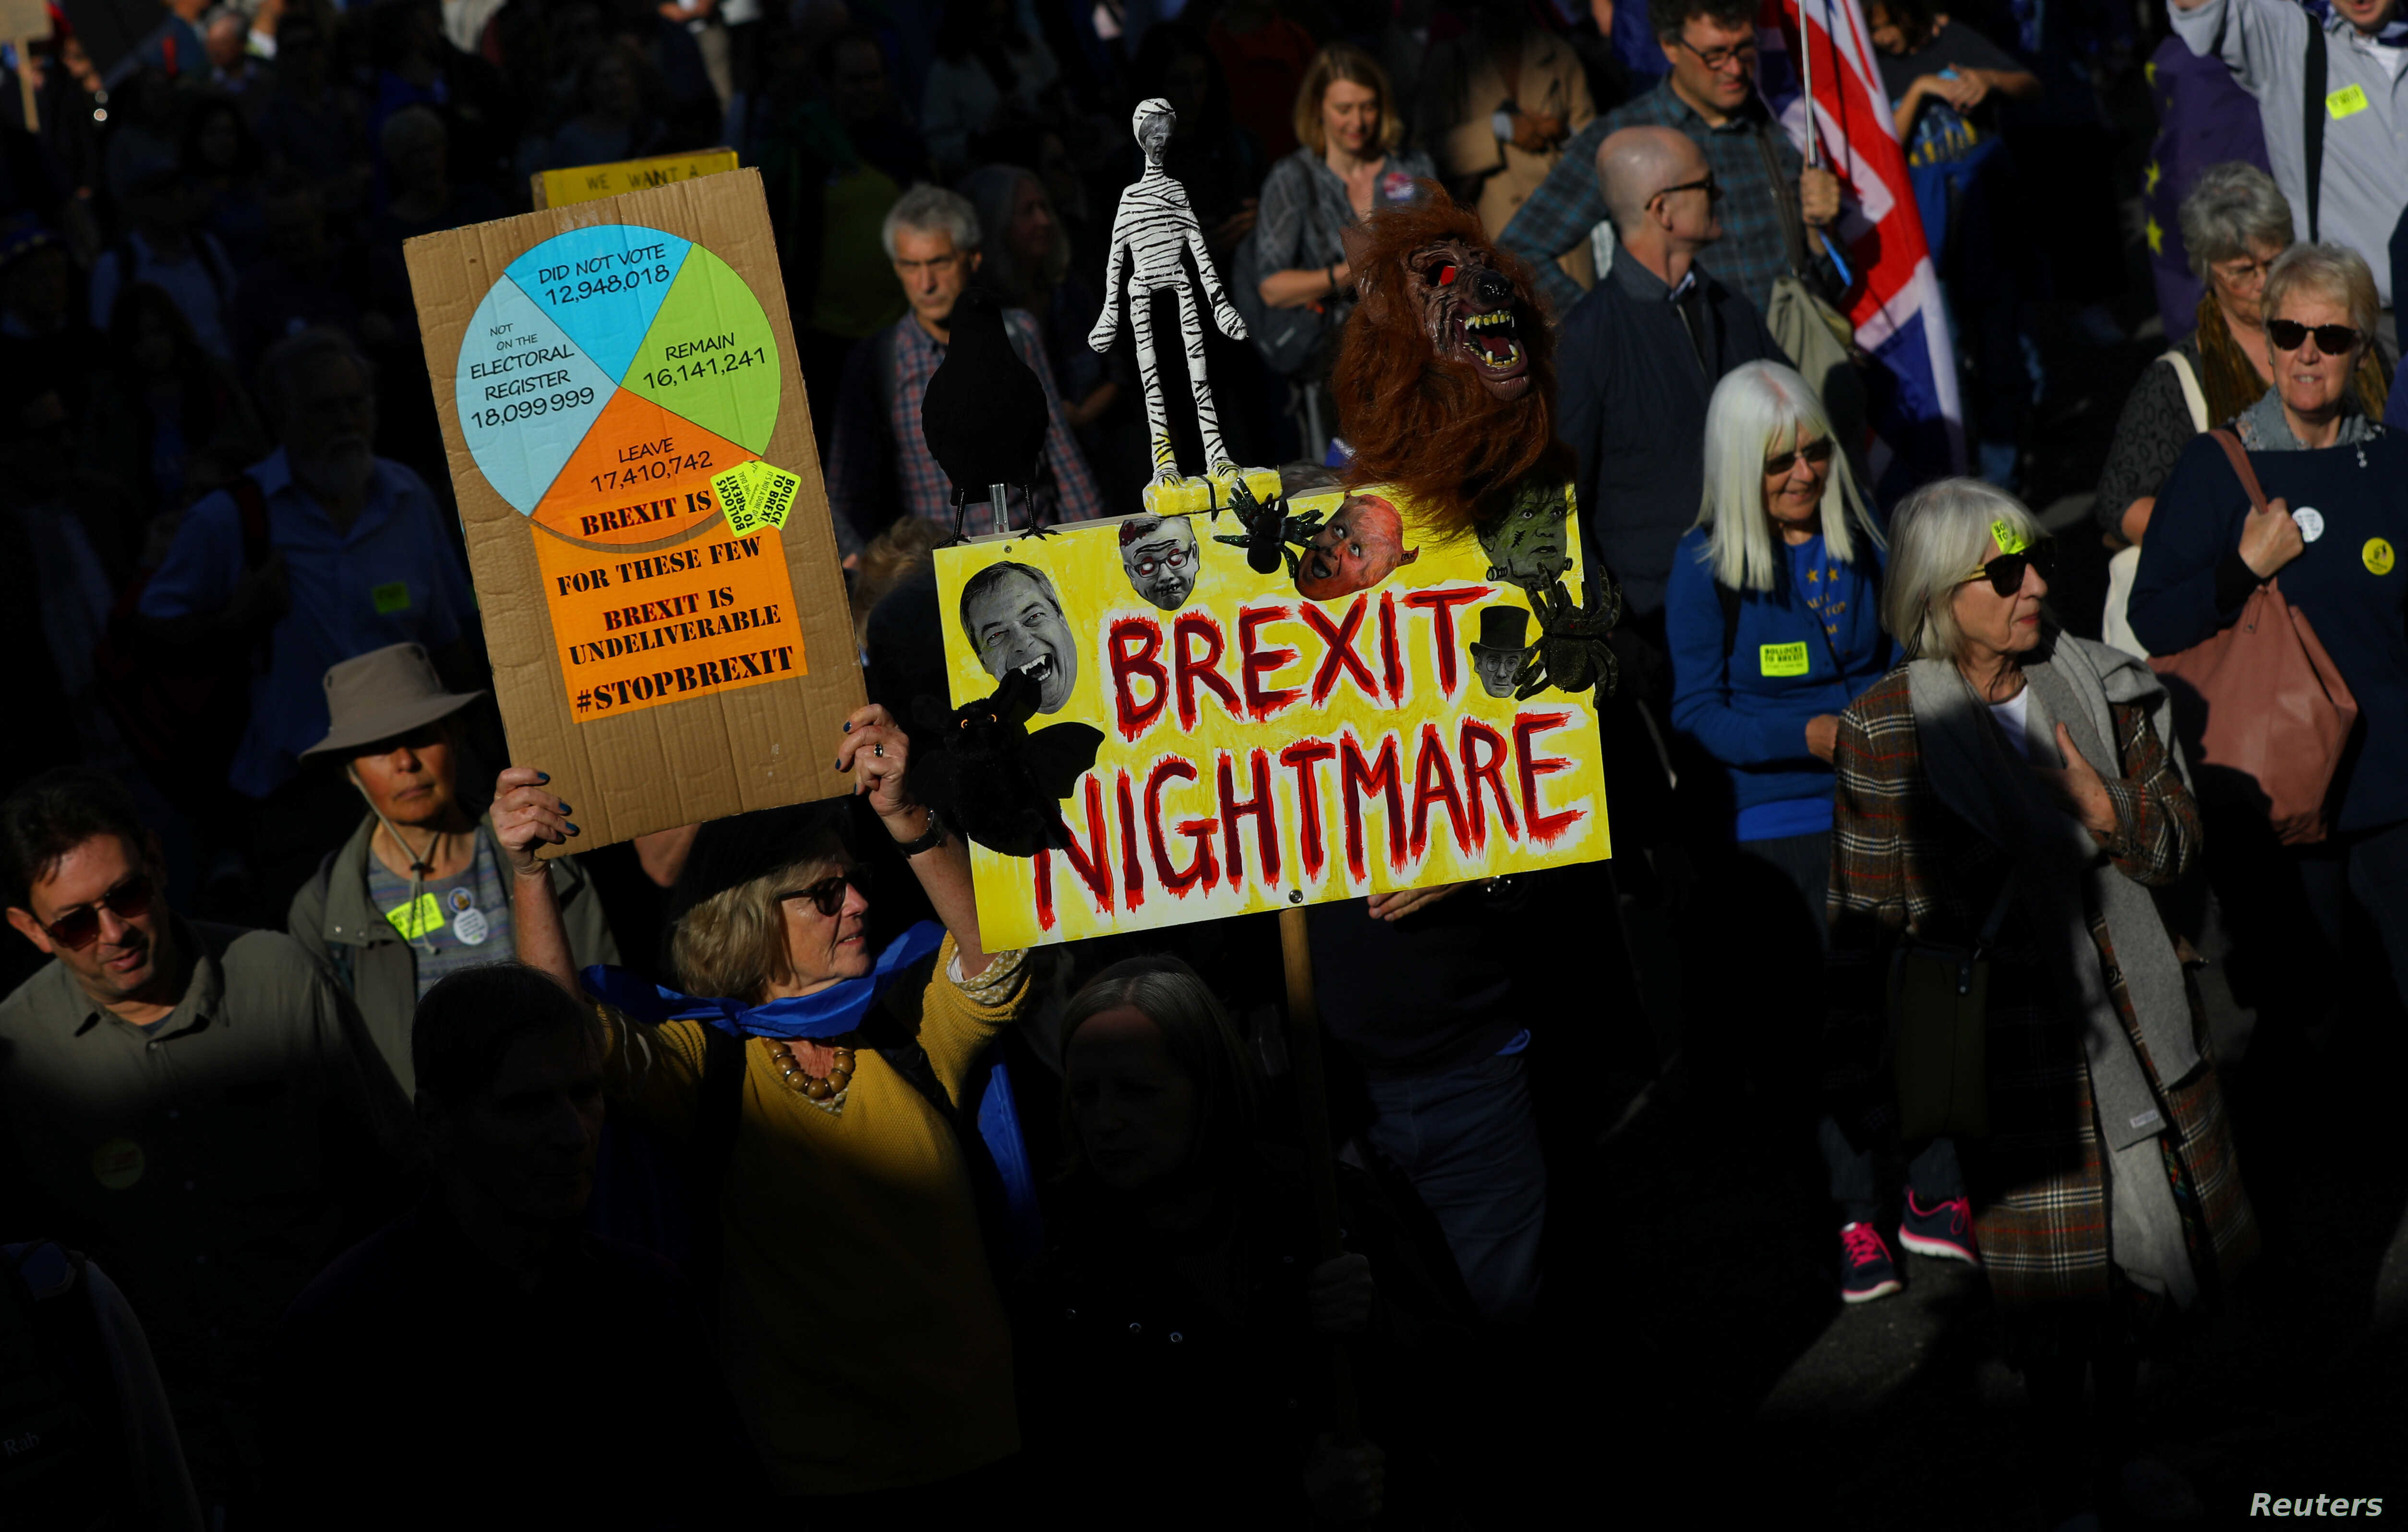 Protesters participating in an anti-Brexit demonstration march through central London, Britain Oct. 20, 2018.